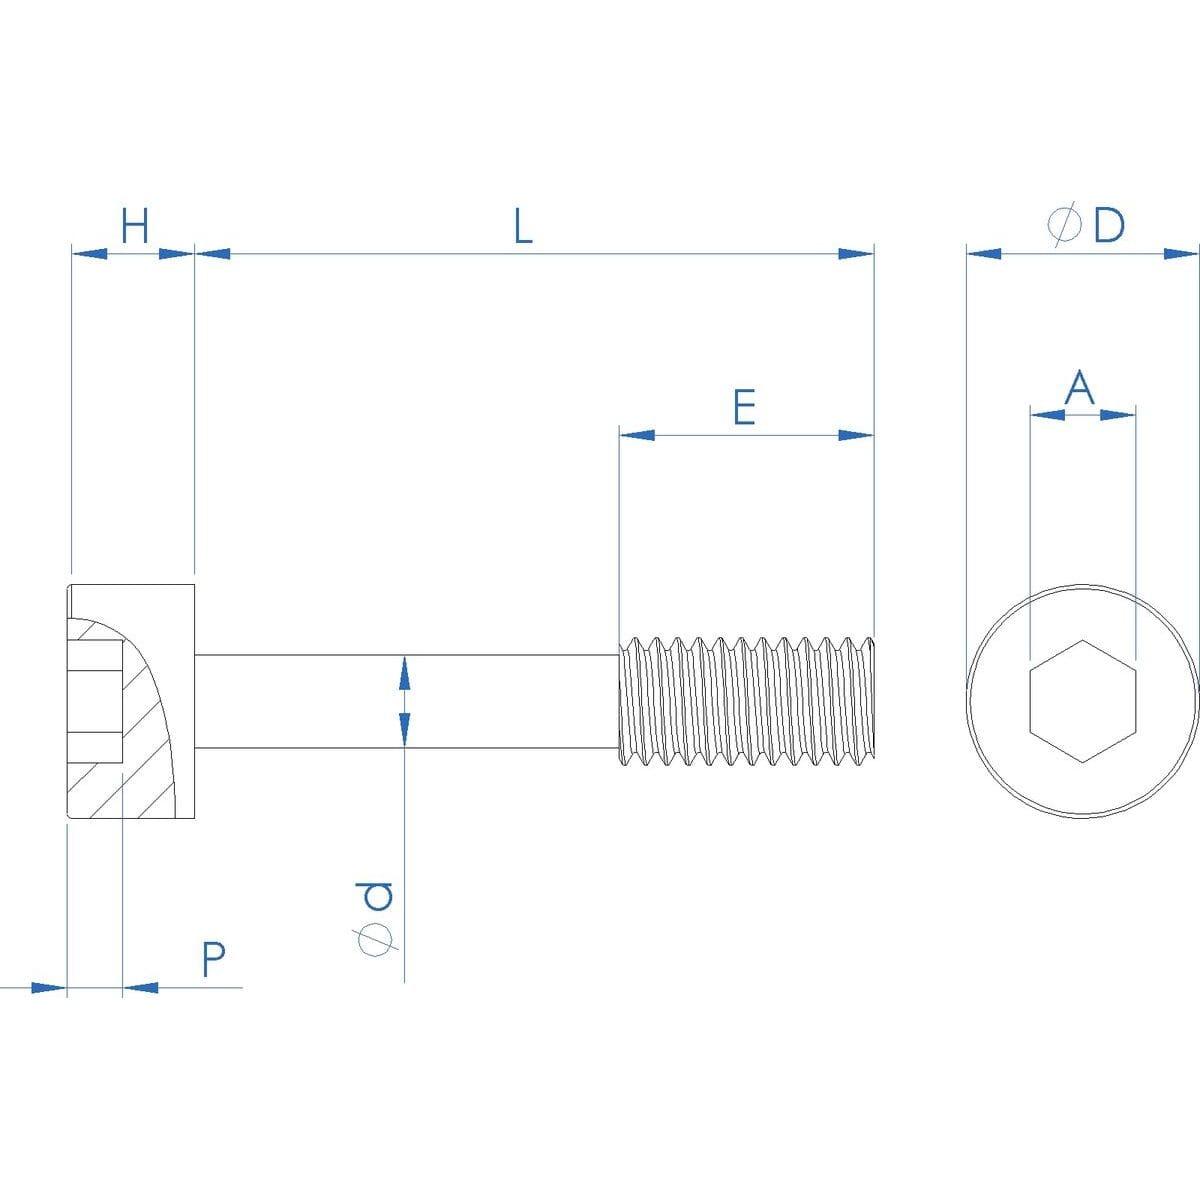 M5 x 20mm Cap Head Captive Screws (DIN 912) - Stainless Steel (A2) Drawing